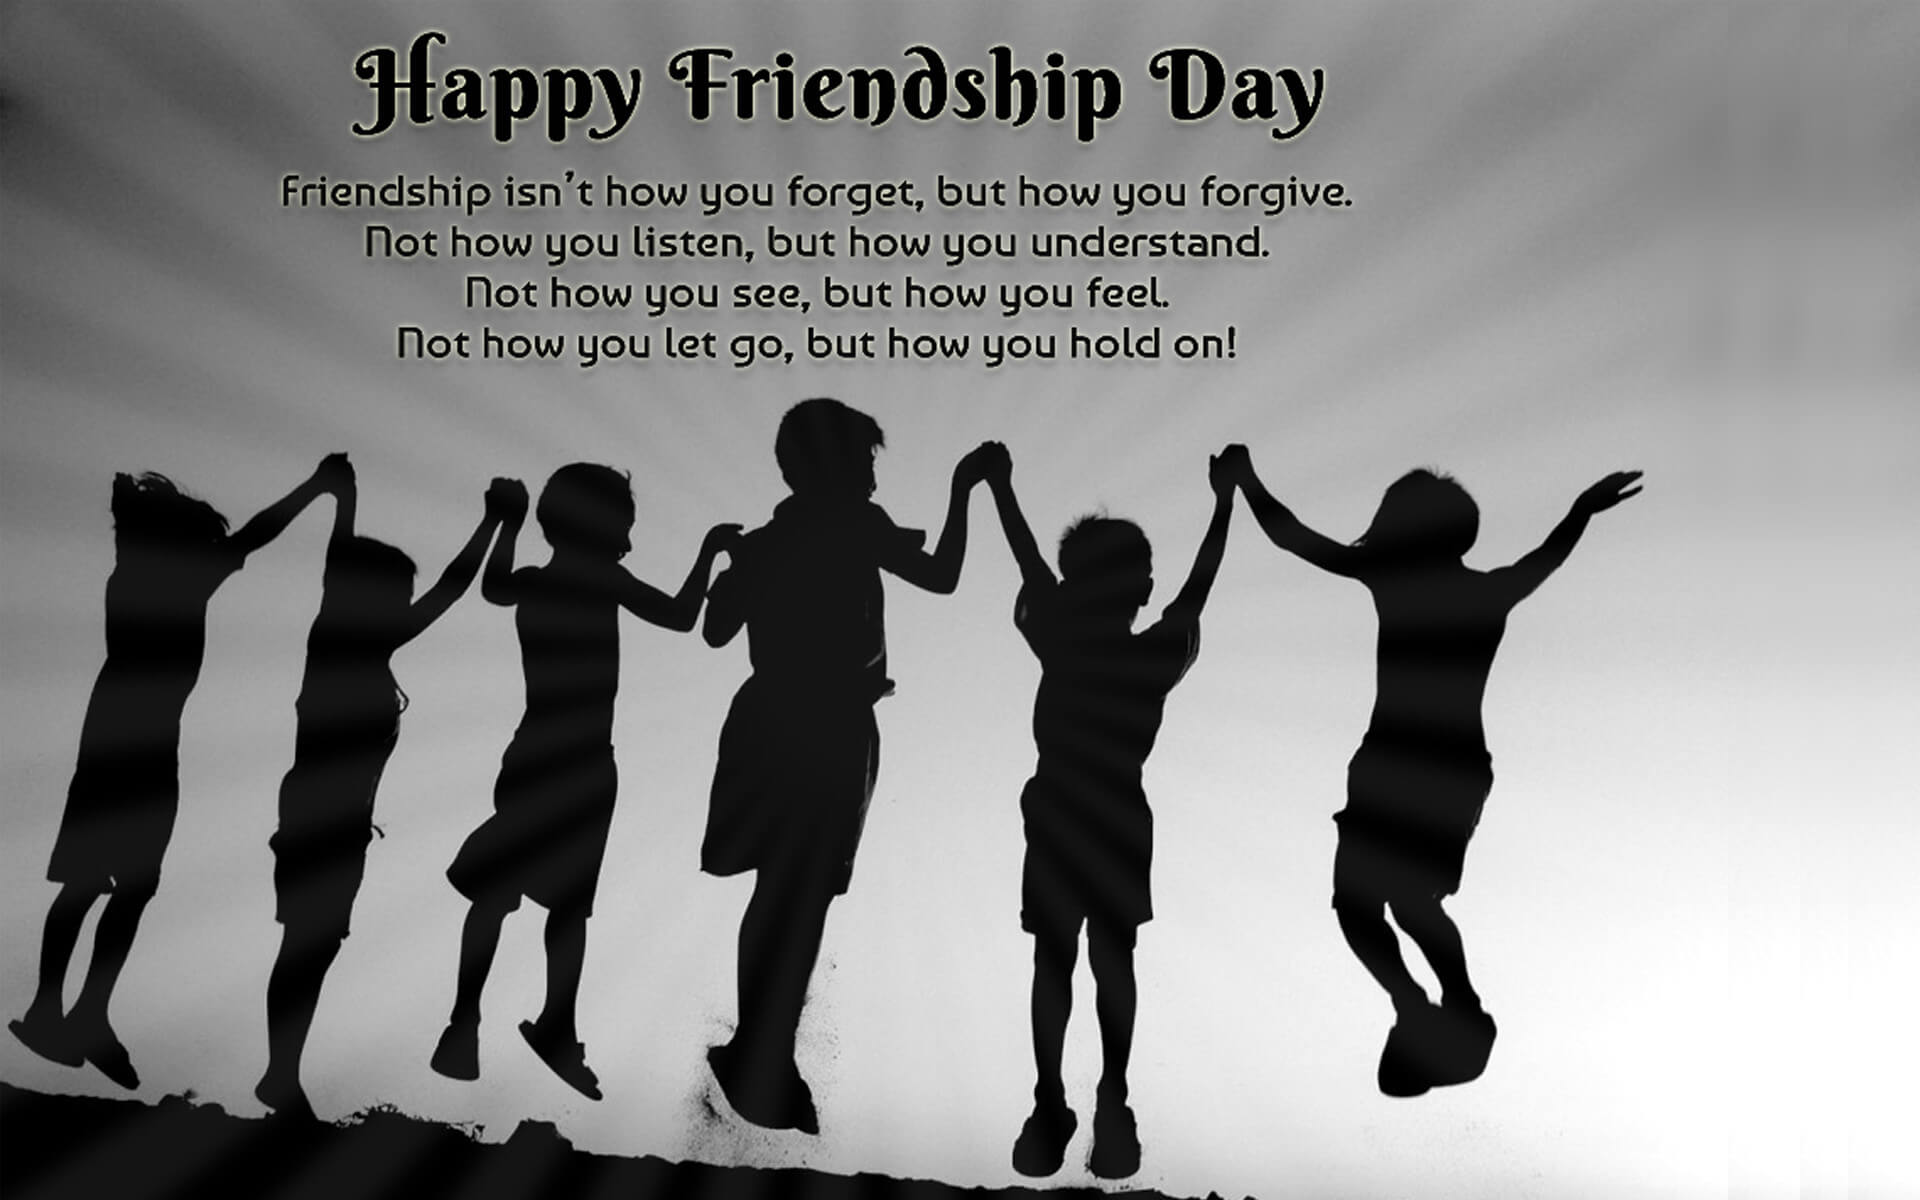 happy friendship day thoughts quotes wallpaper